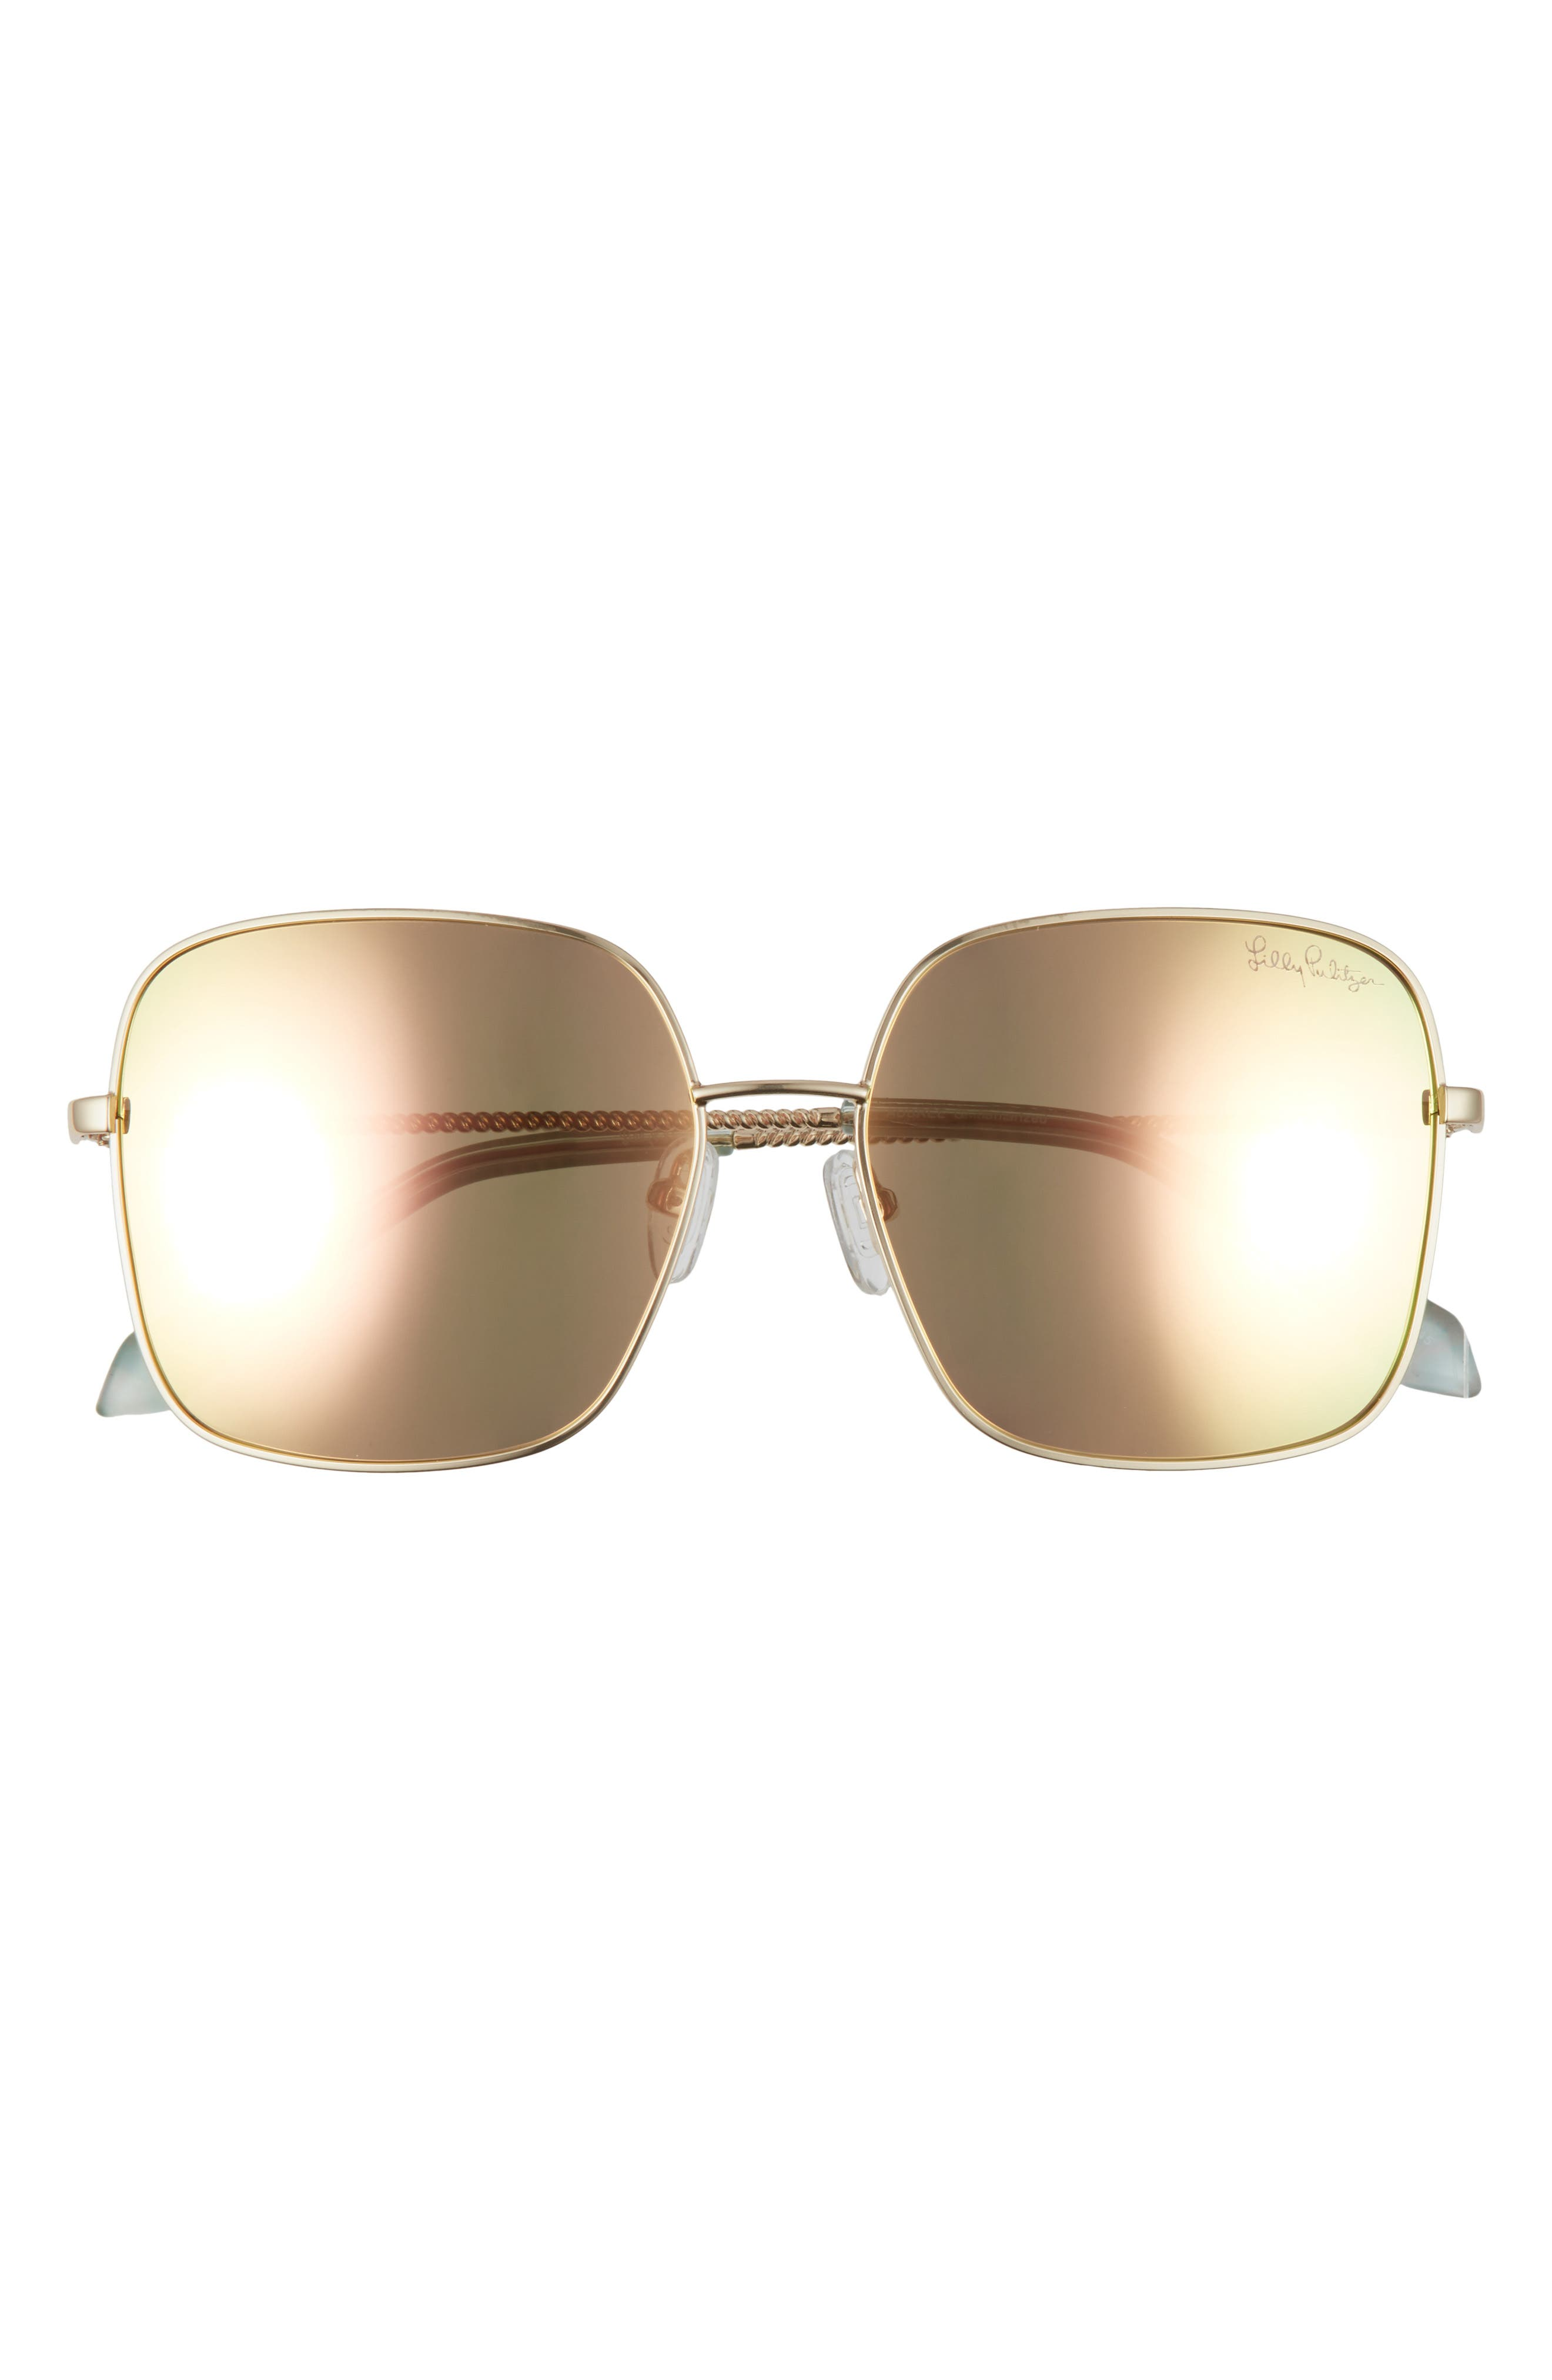 Glare-reducing polarized lenses with a mirrored finish add suave style and utility to these bold square sunglasses. Style Name: Lilly Pulitzer Aubree 56mm Polarized Square Sunglasses. Style Number: 6104395. Available in stores.